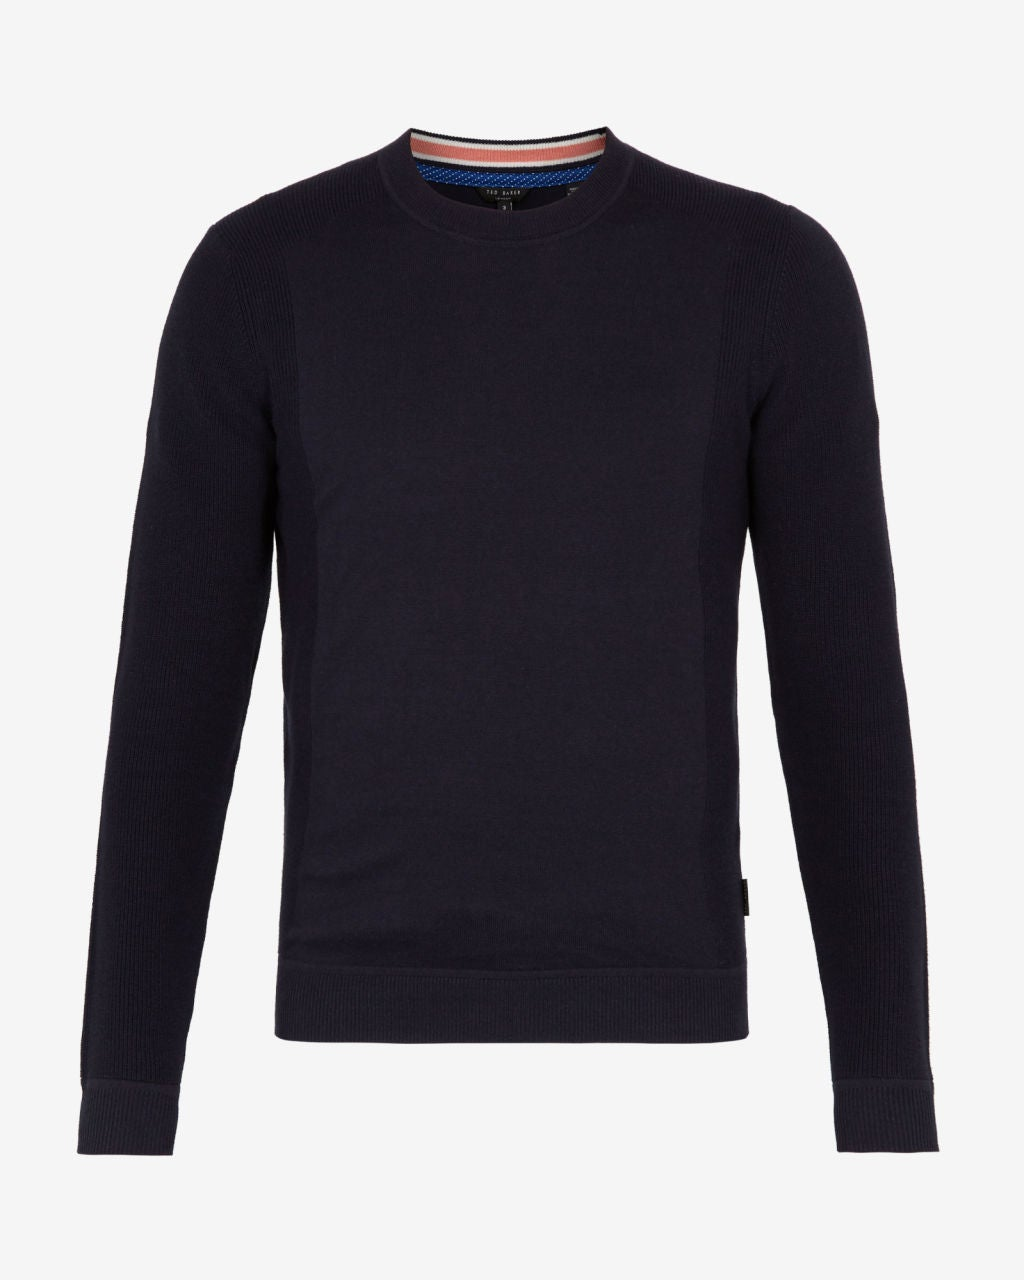 Ted Baker Textured Sleeve Crew Neck Long Sleeve T-Shirt